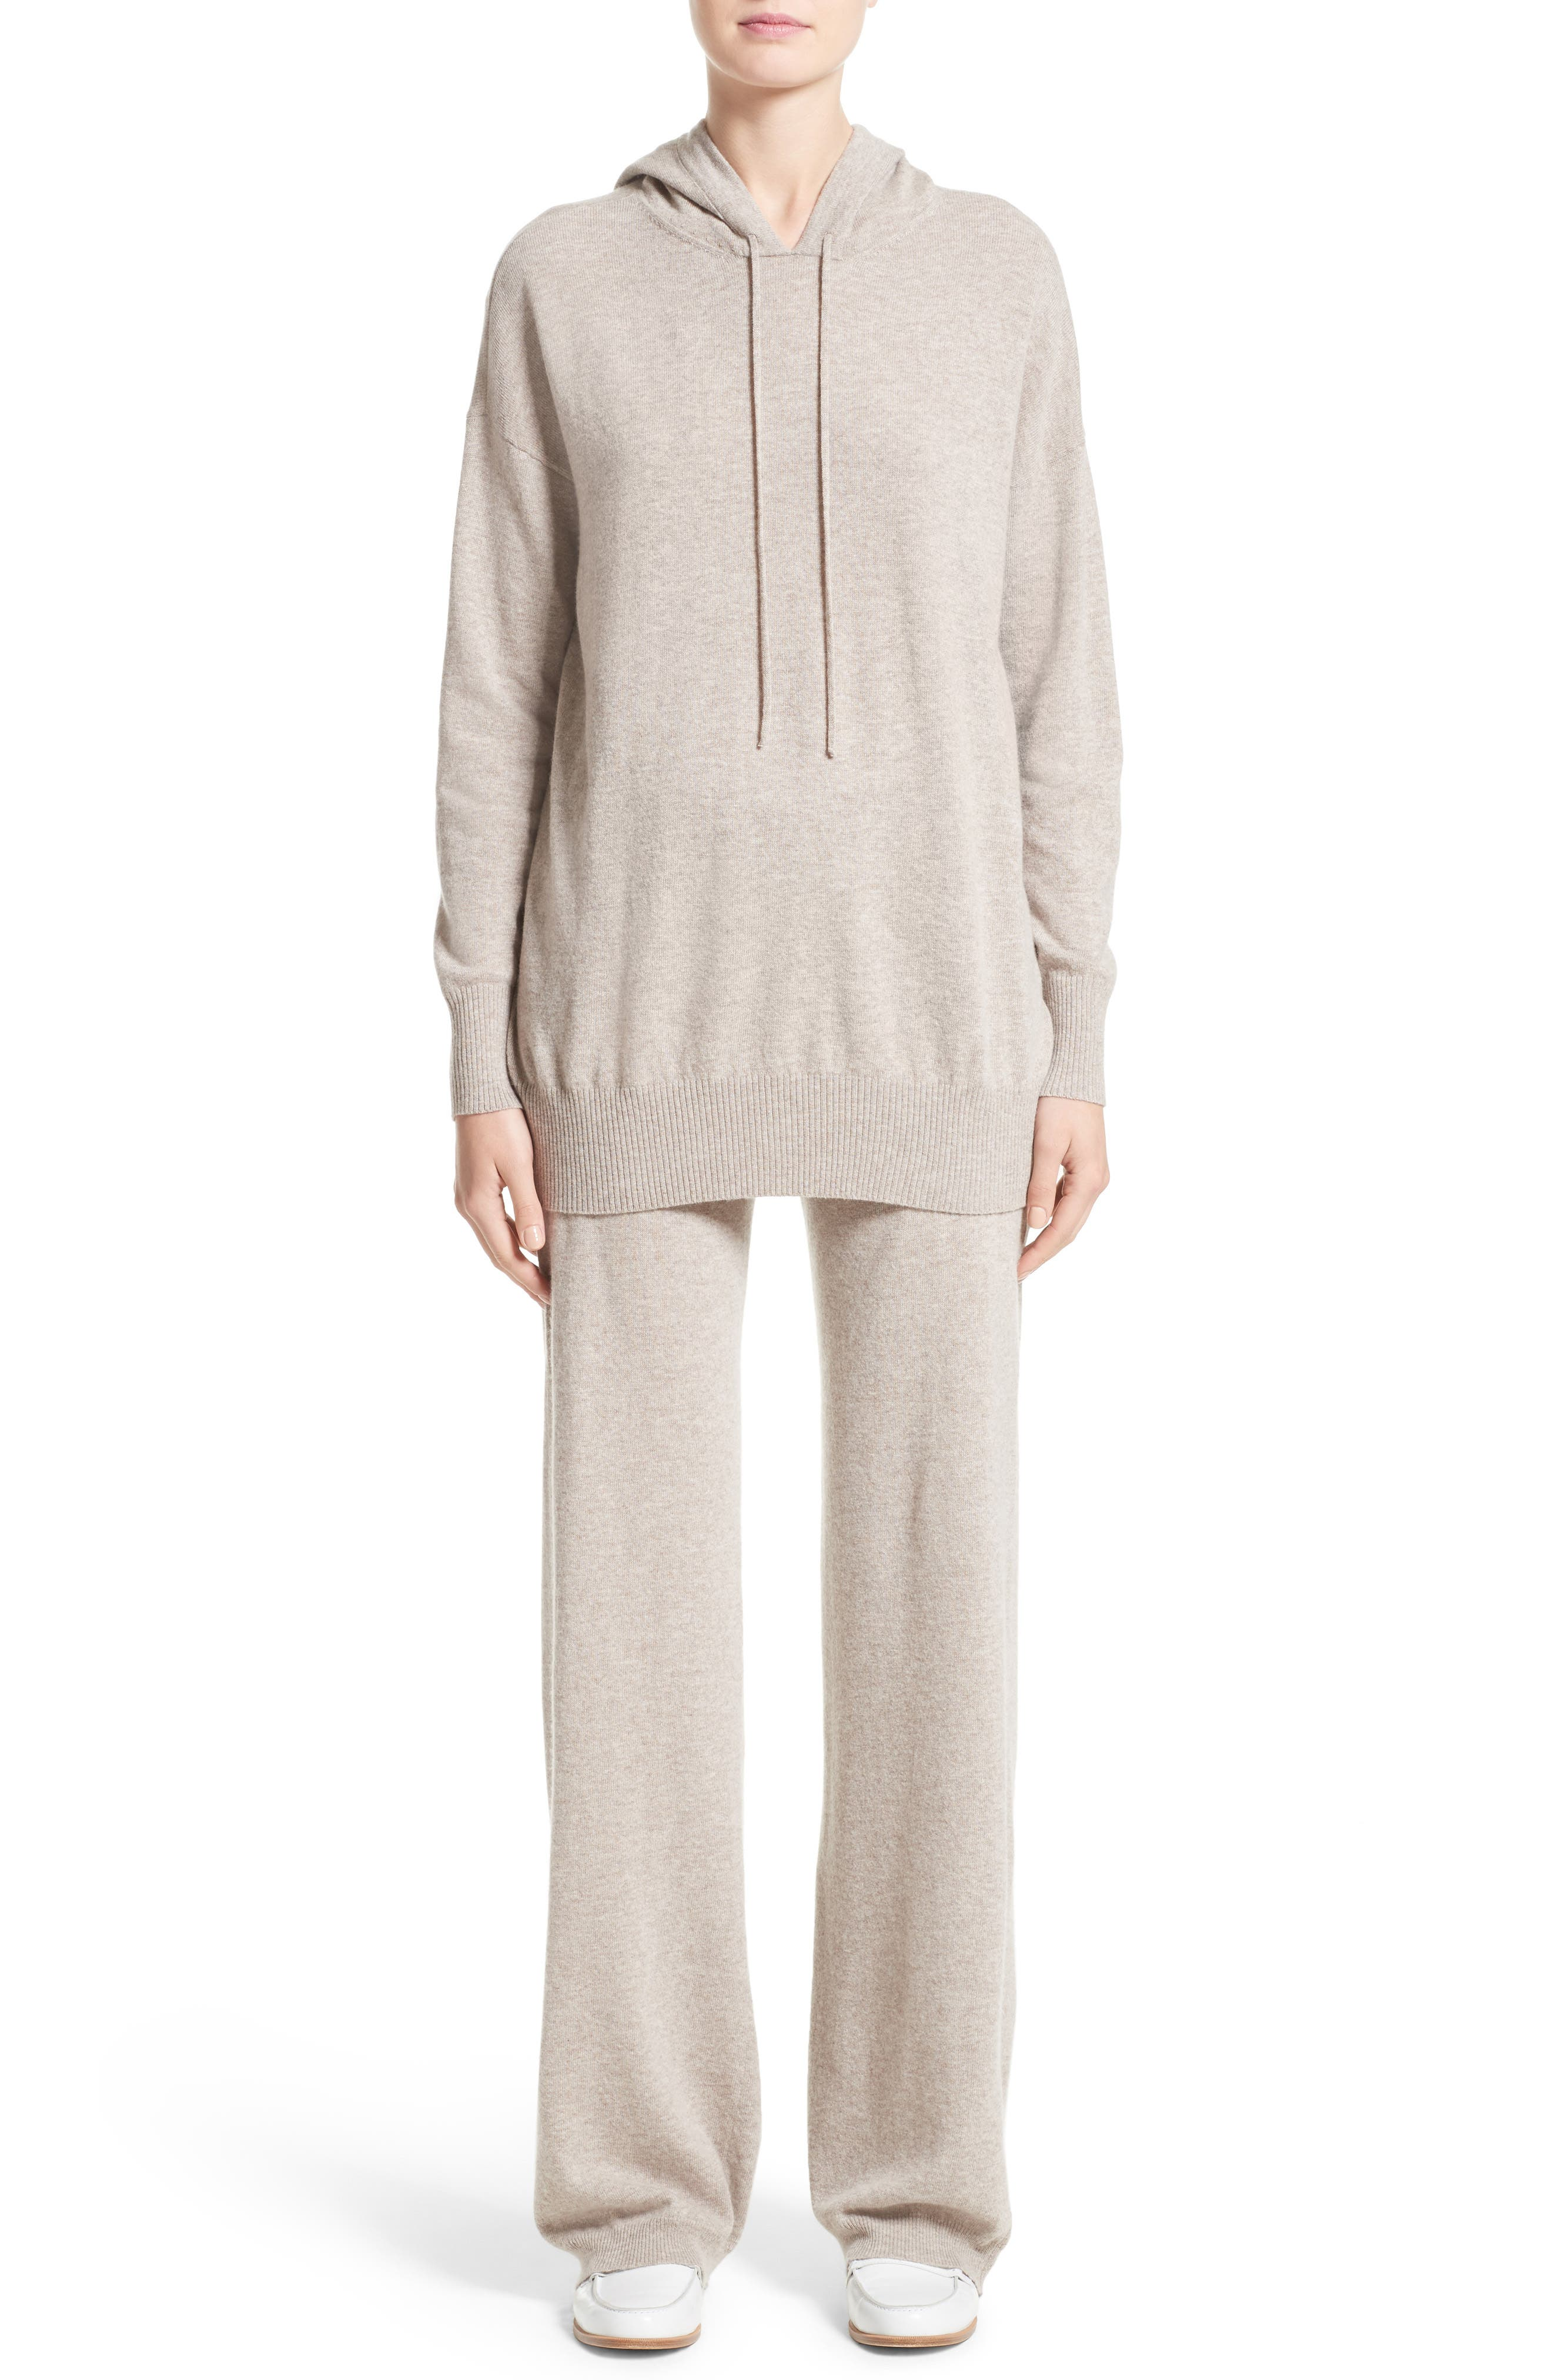 Nitra Wool & Cashmere Hooded Sweater,                             Alternate thumbnail 6, color,